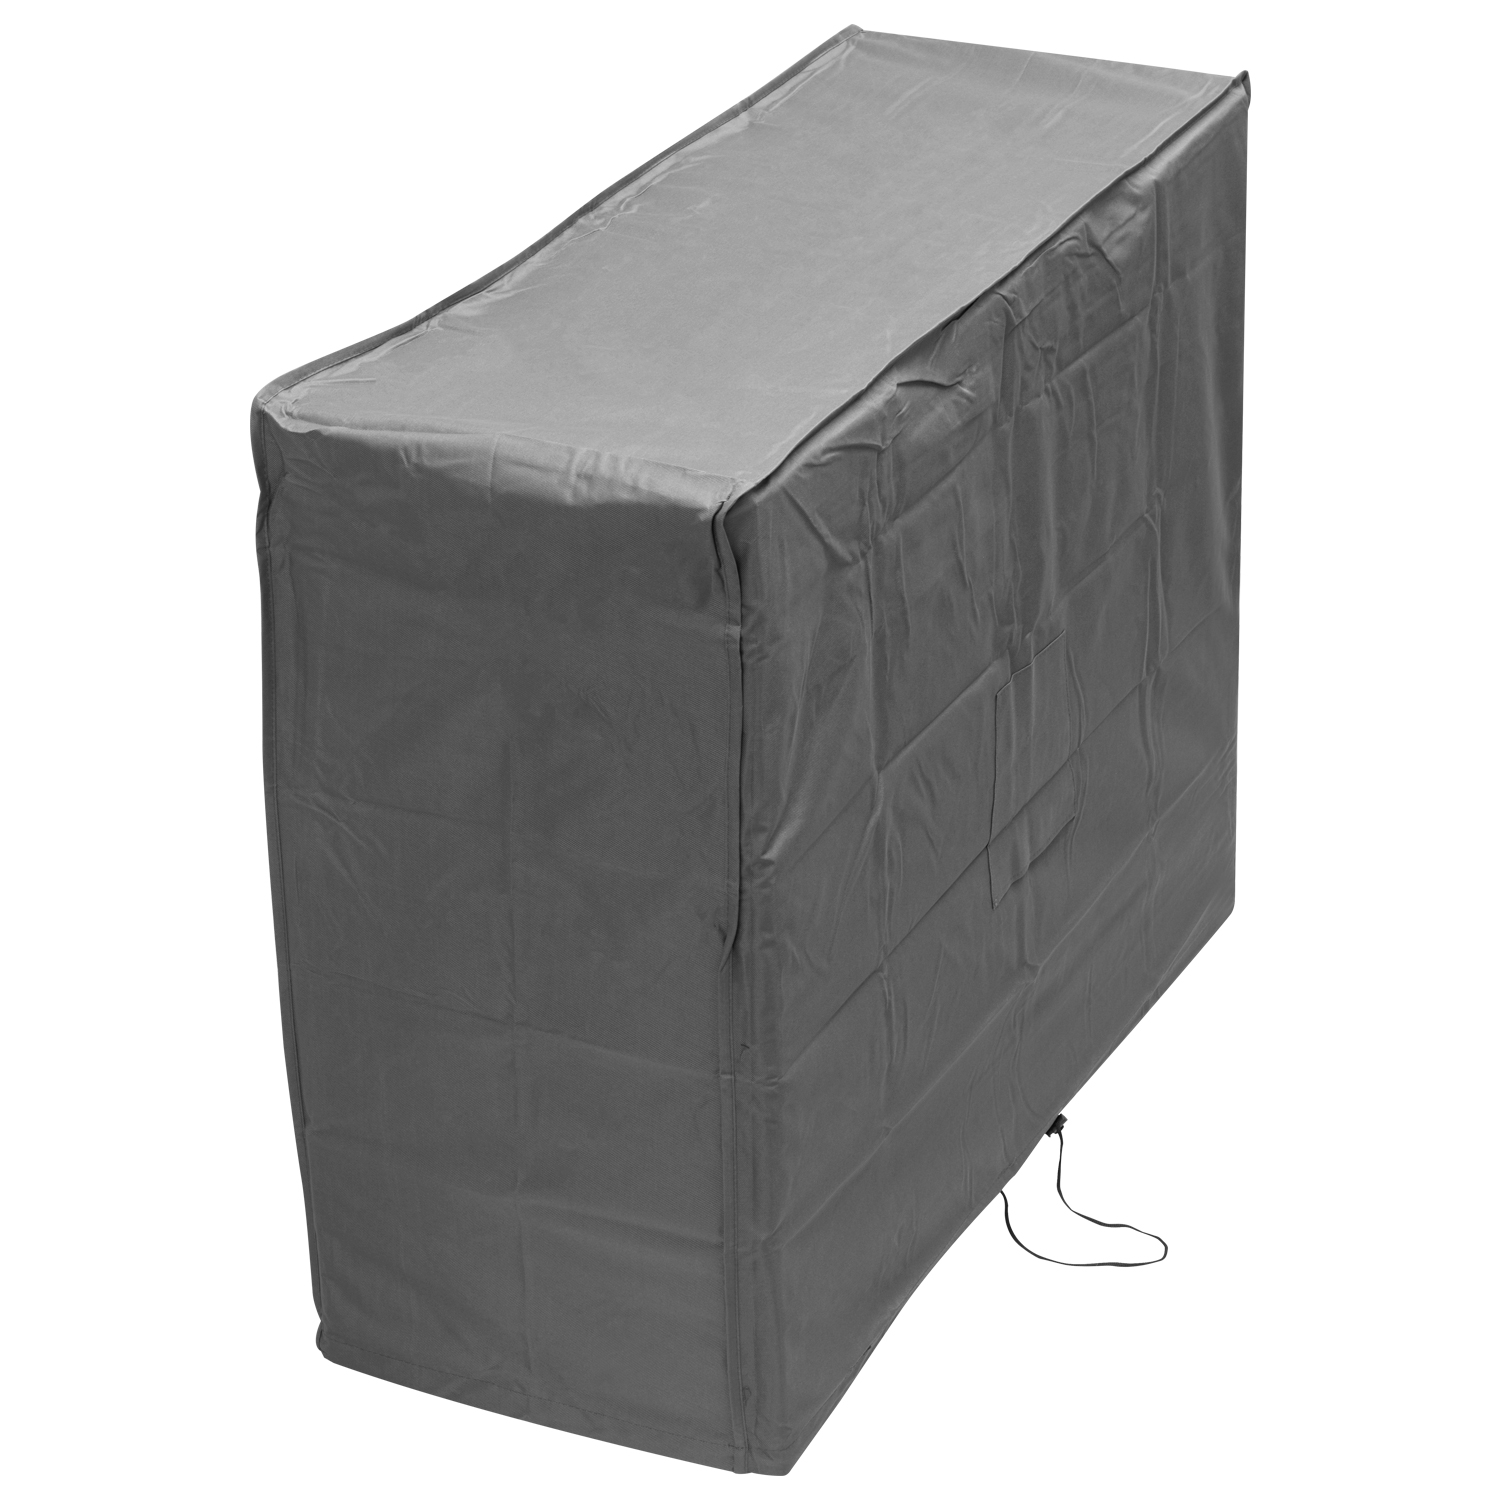 Oxbridge large barbecue cover grey covers outdoor value for Oxbridge outdoor furniture covers